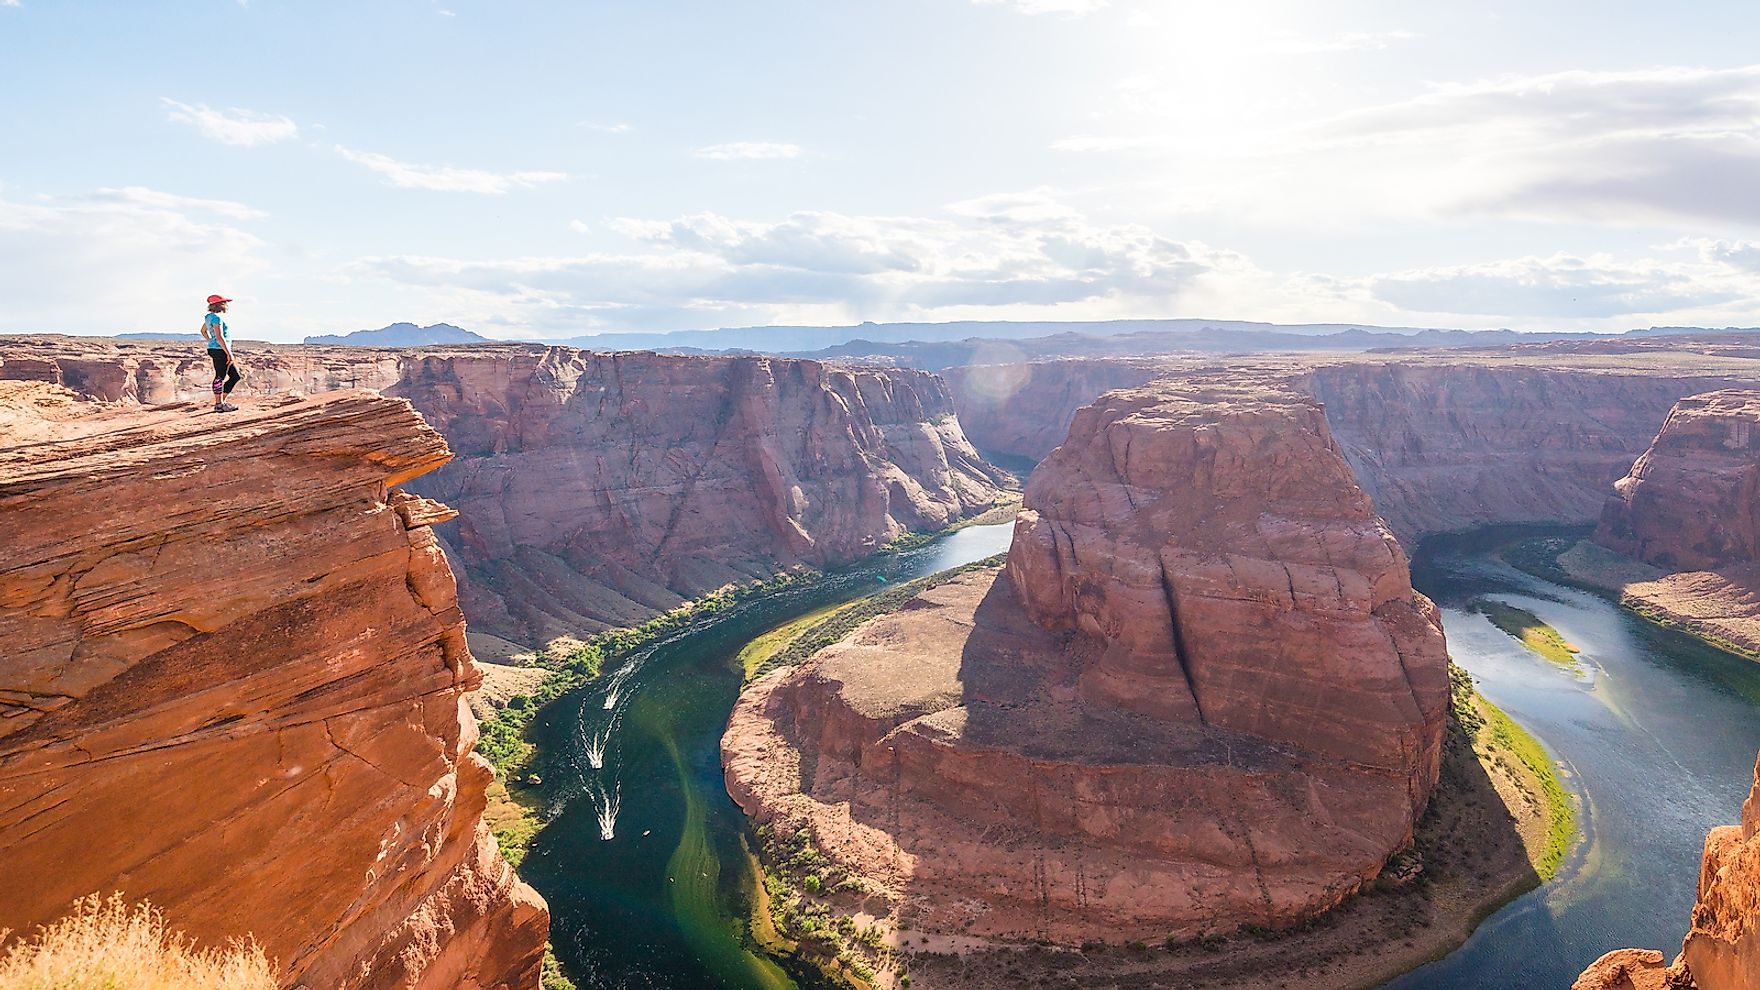 The Grand Canyon National Park is famous for its astounding landscapes.